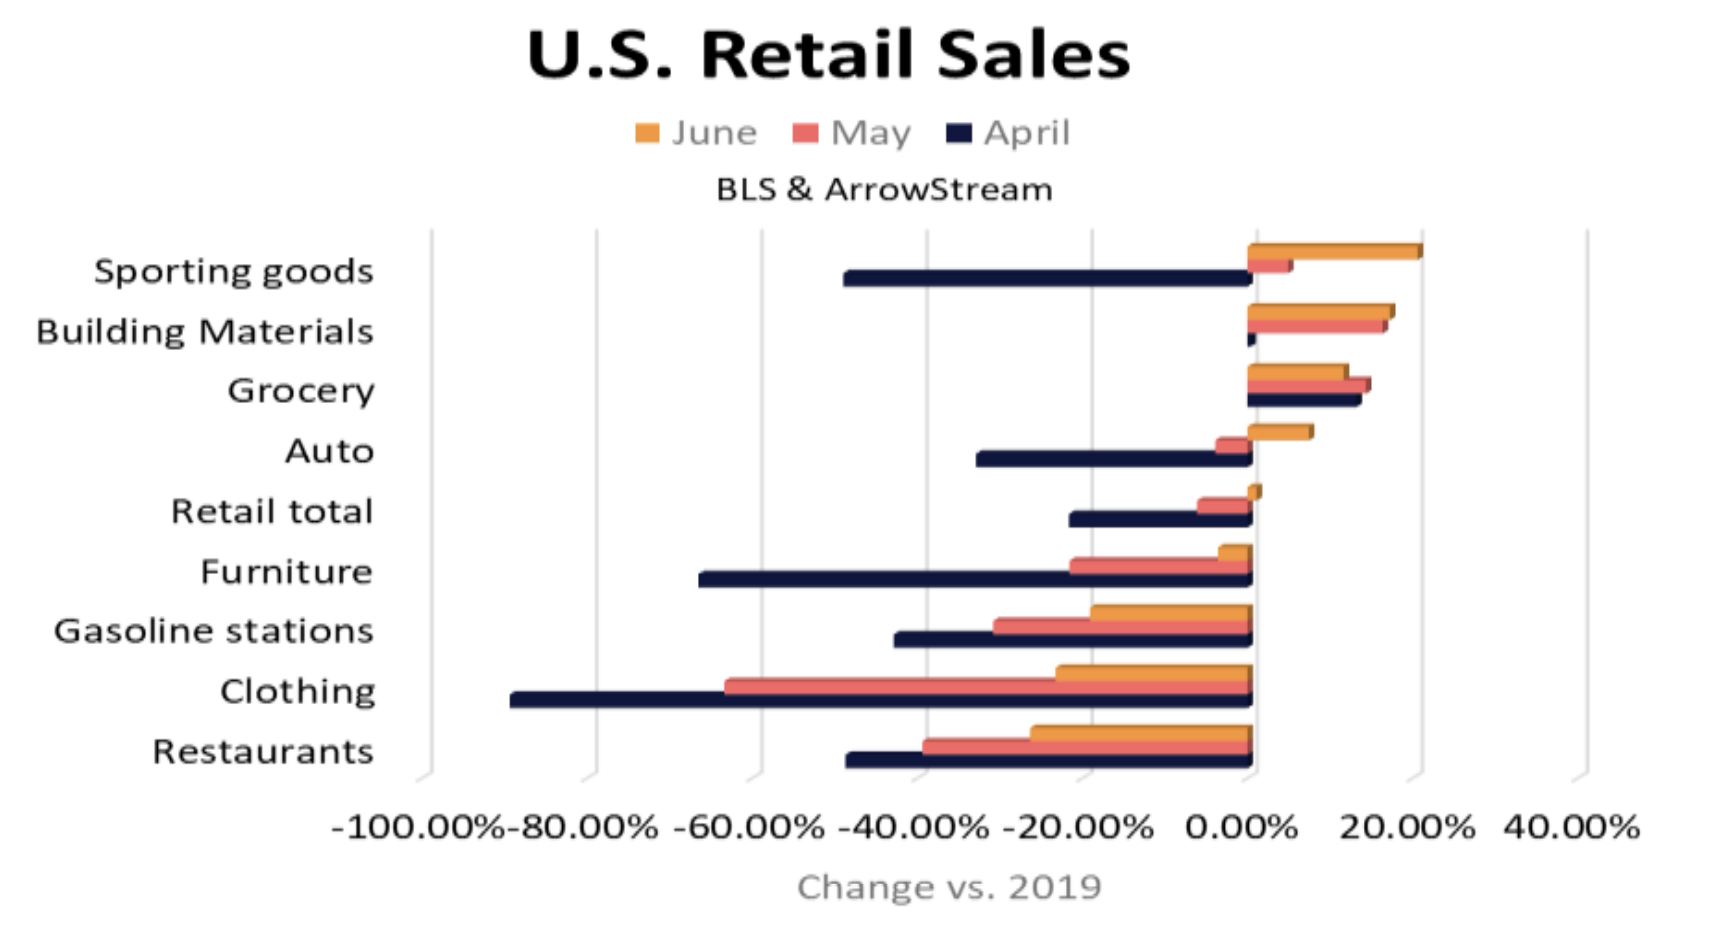 US retail sales by business segment